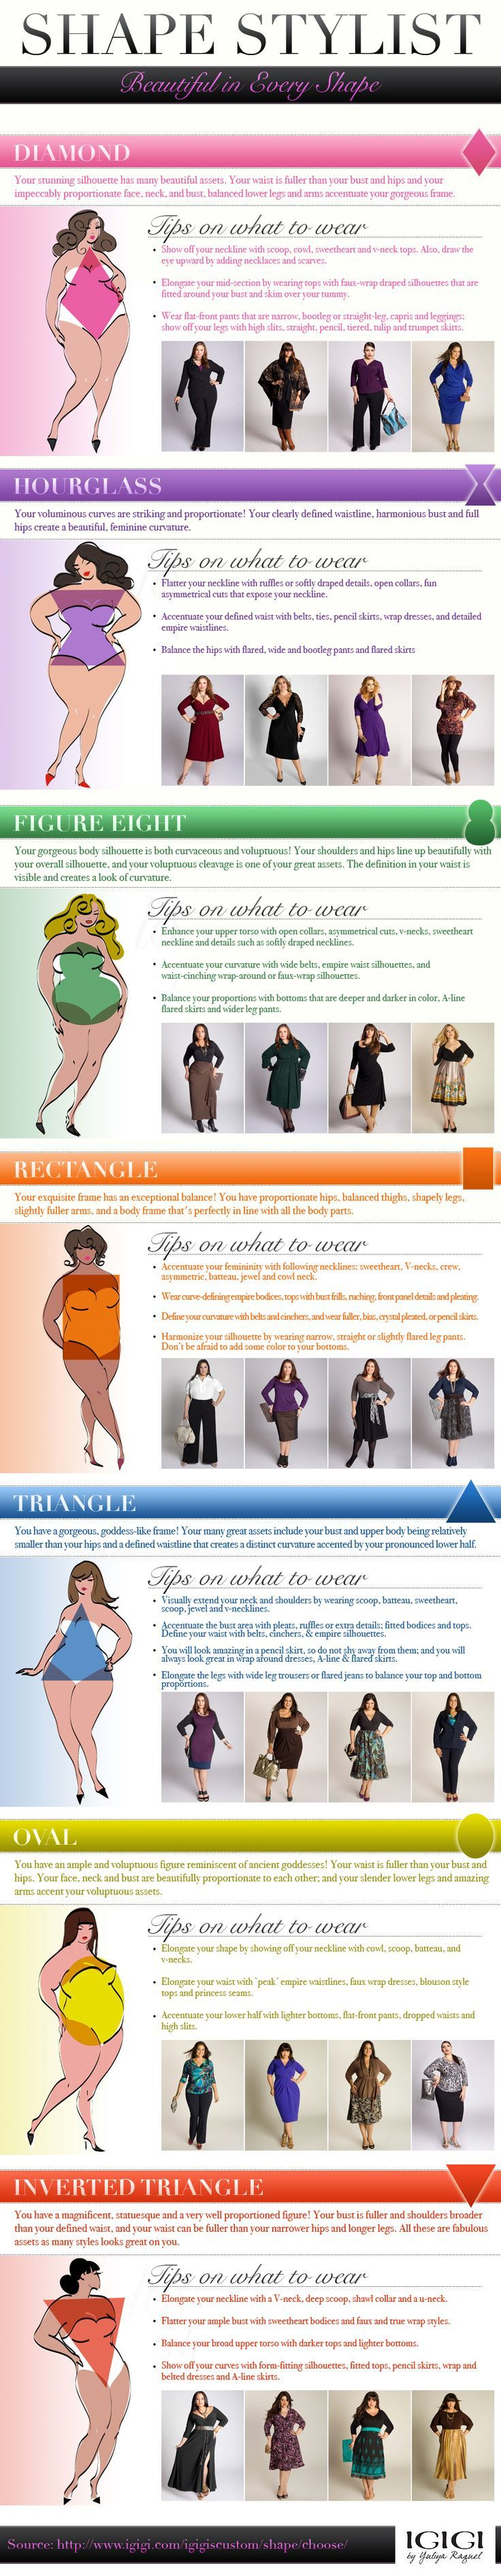 0c3dd5d63f061 Plus Size Fashion  Dress for your Body Shape - AbbeyPost Made To Measure  Blog - very interesting!